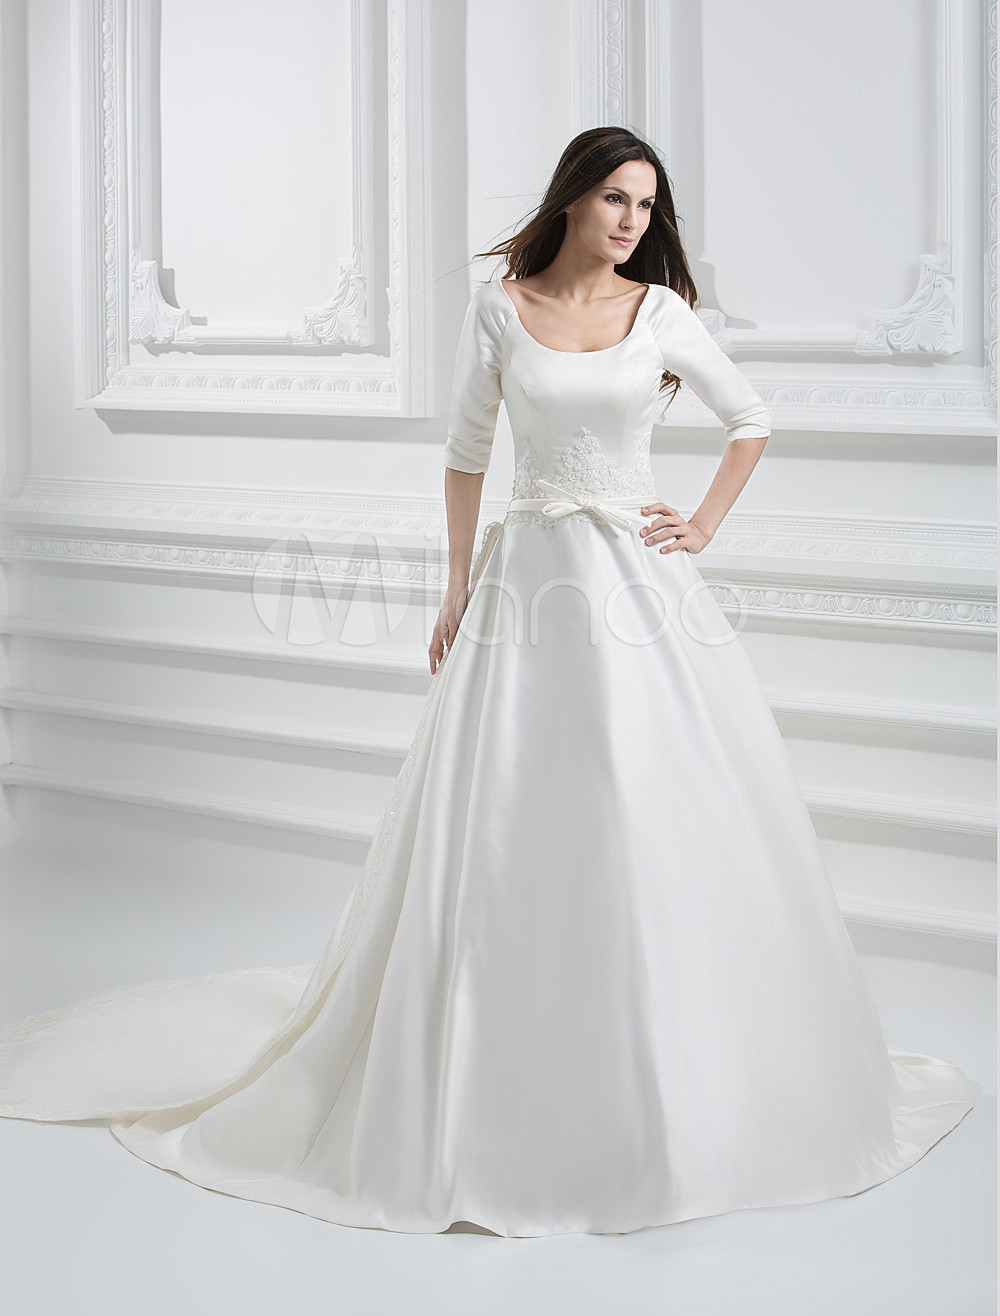 Modern White Satin Jewel A-line Wedding Dress